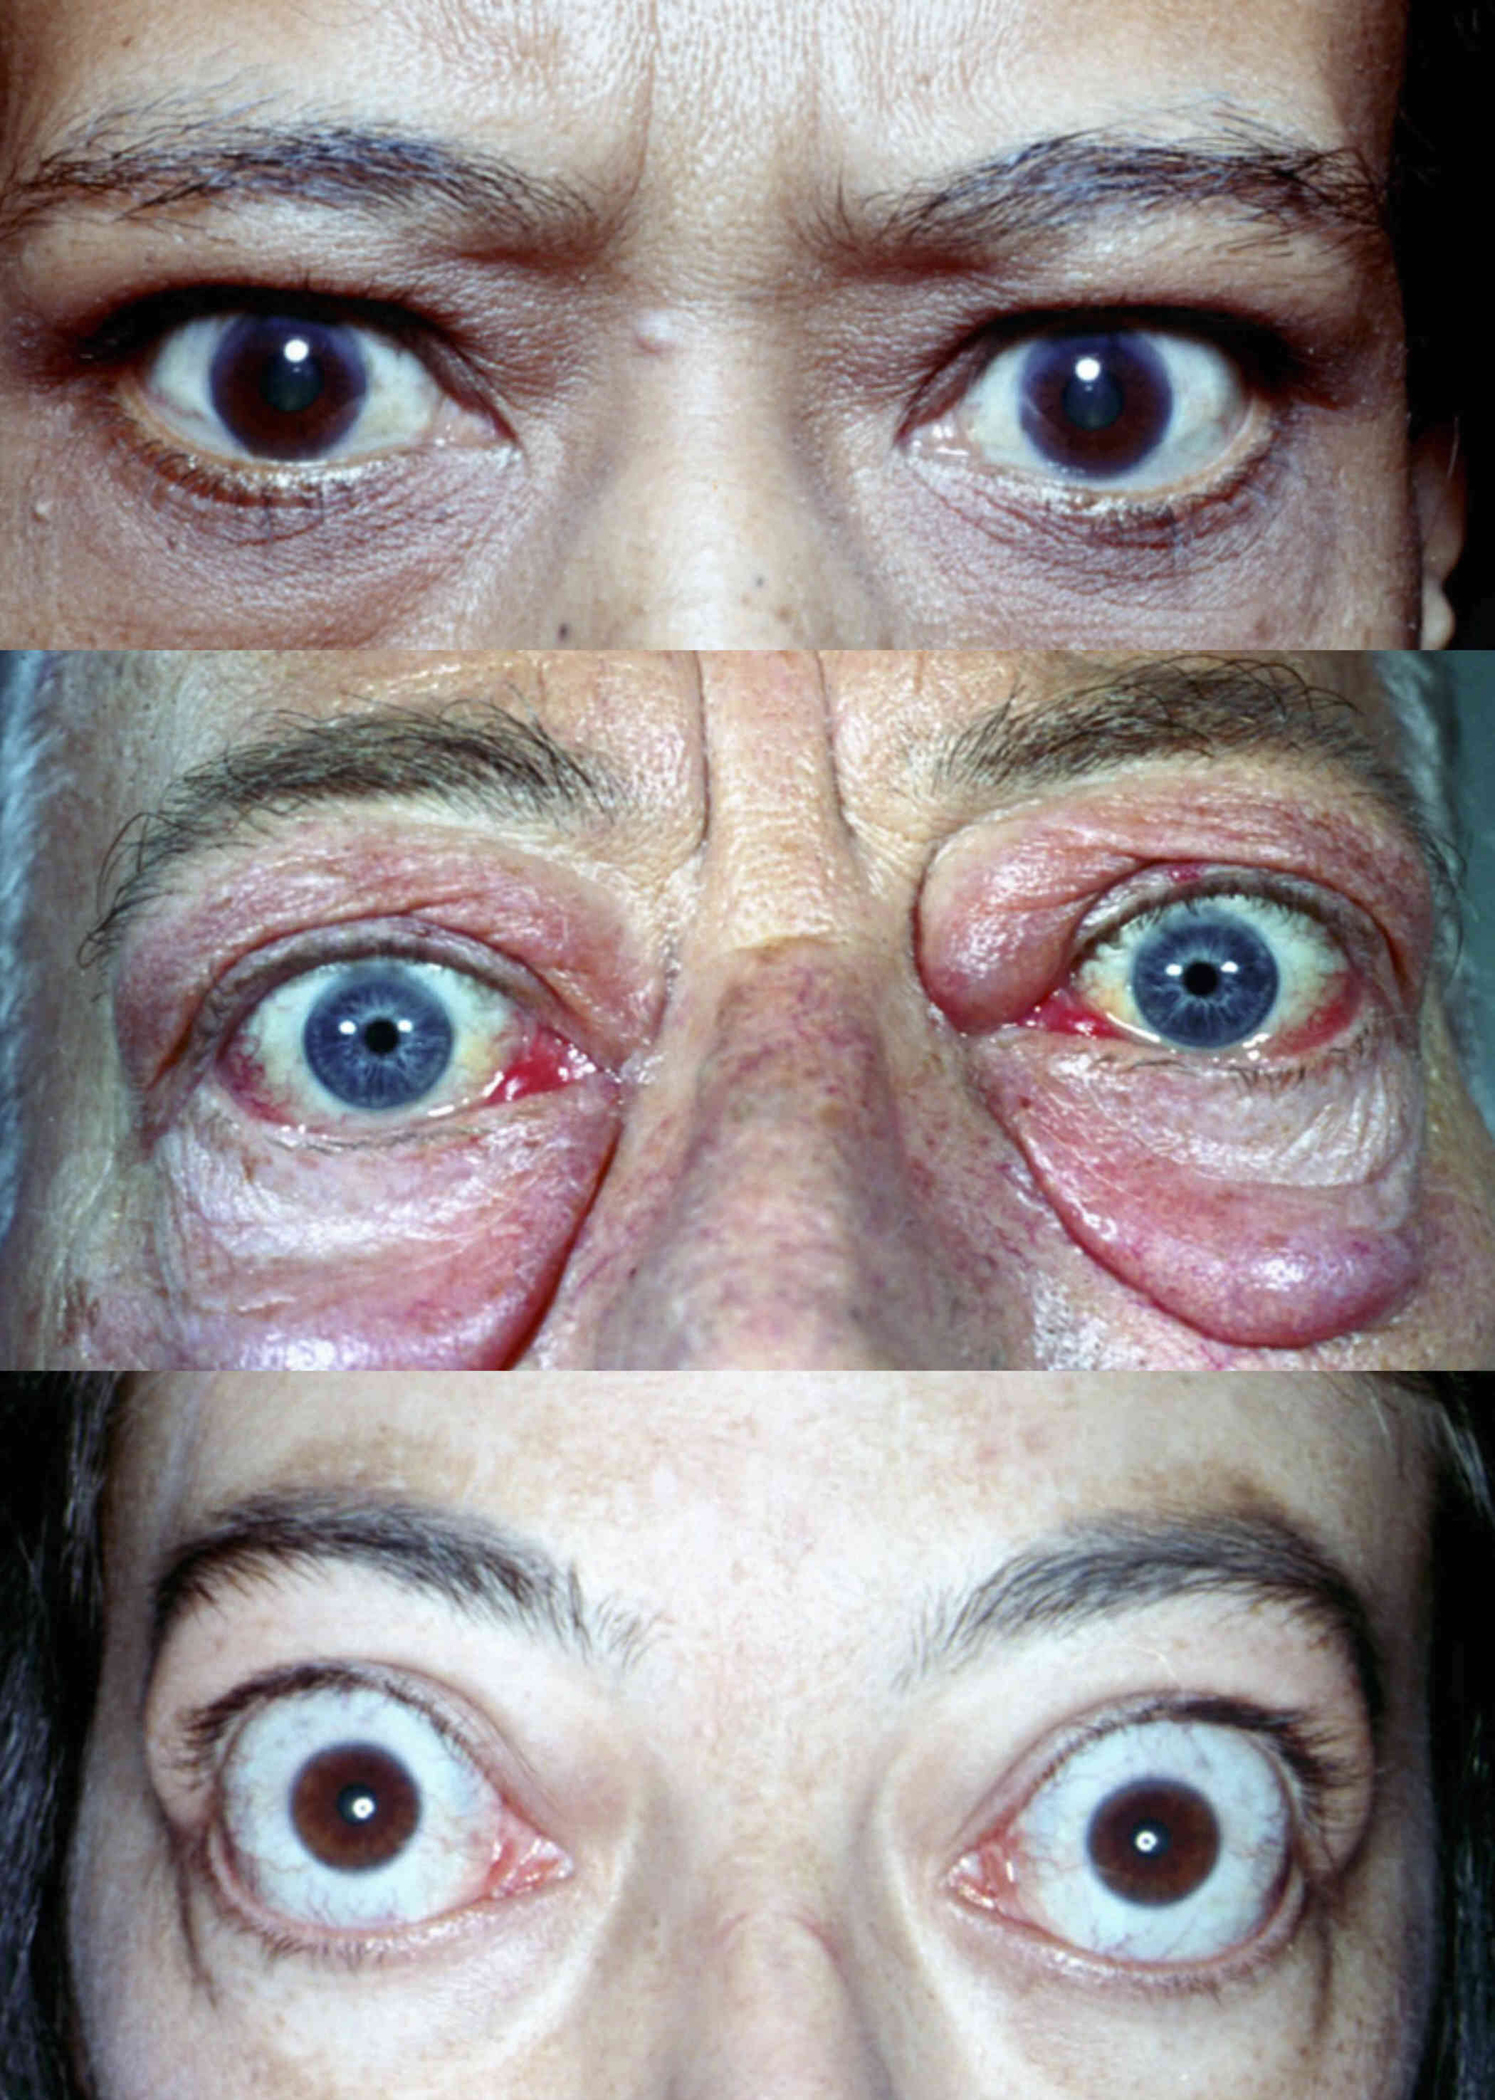 Ophthalmopathy